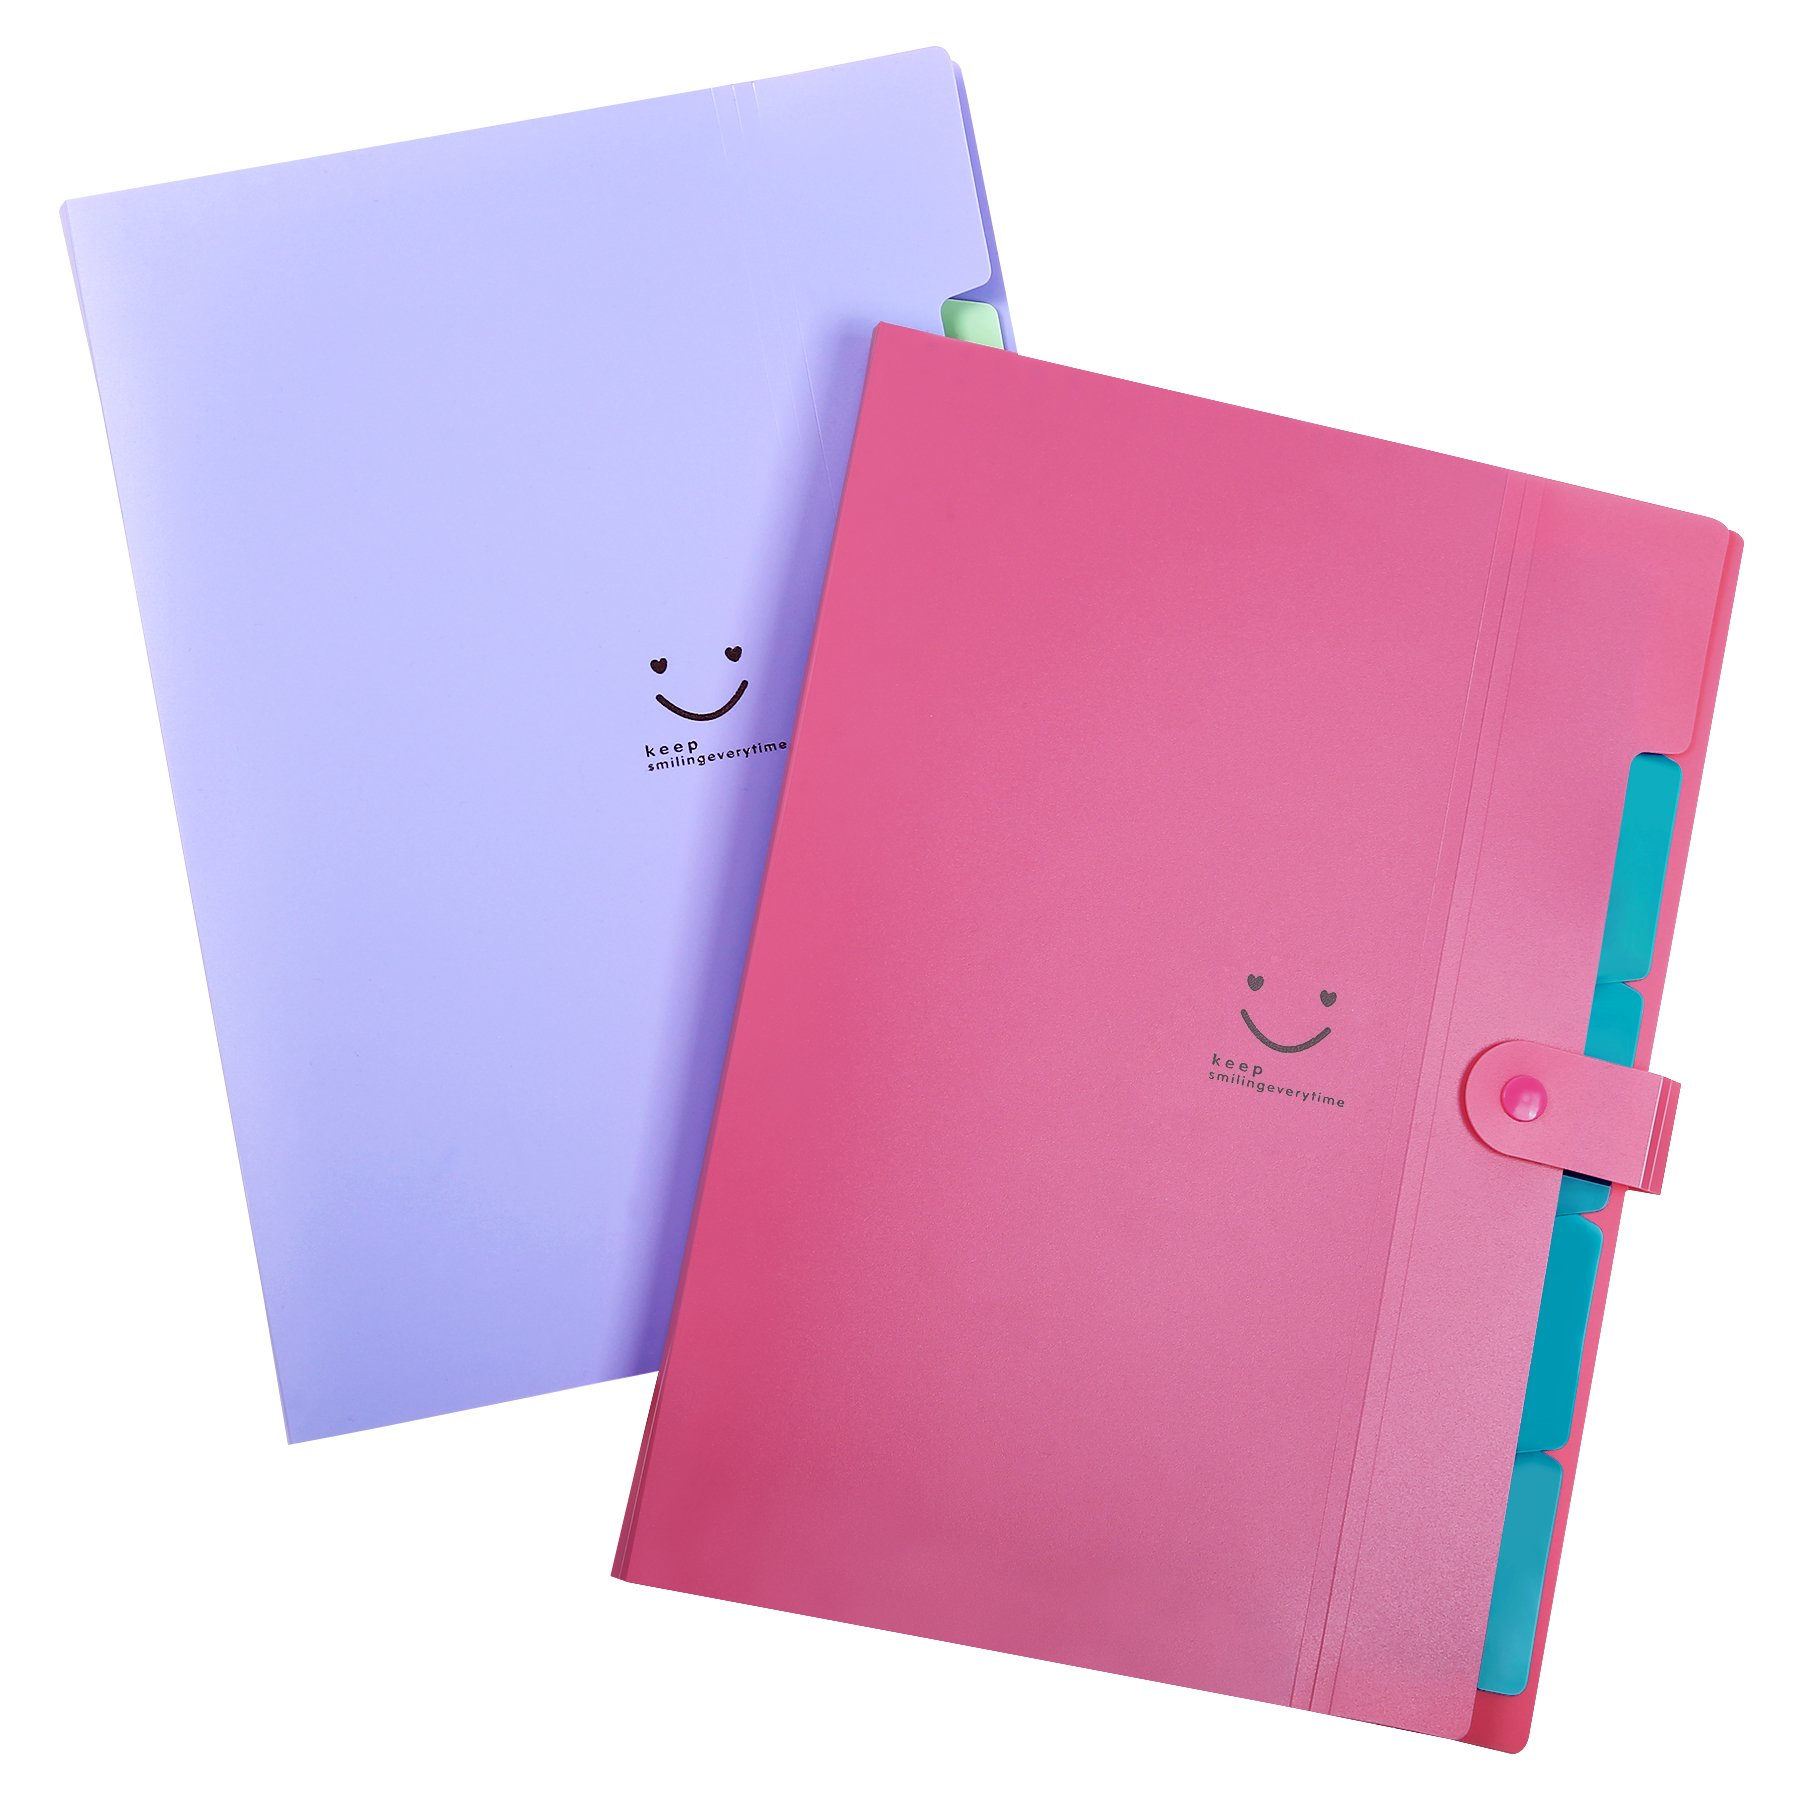 Phyxin Expanding file folder Office organizer document Accordion folder clipboard Letter Size A4 with 5 pockets Plastic Set of 2, Purple Fuchsia